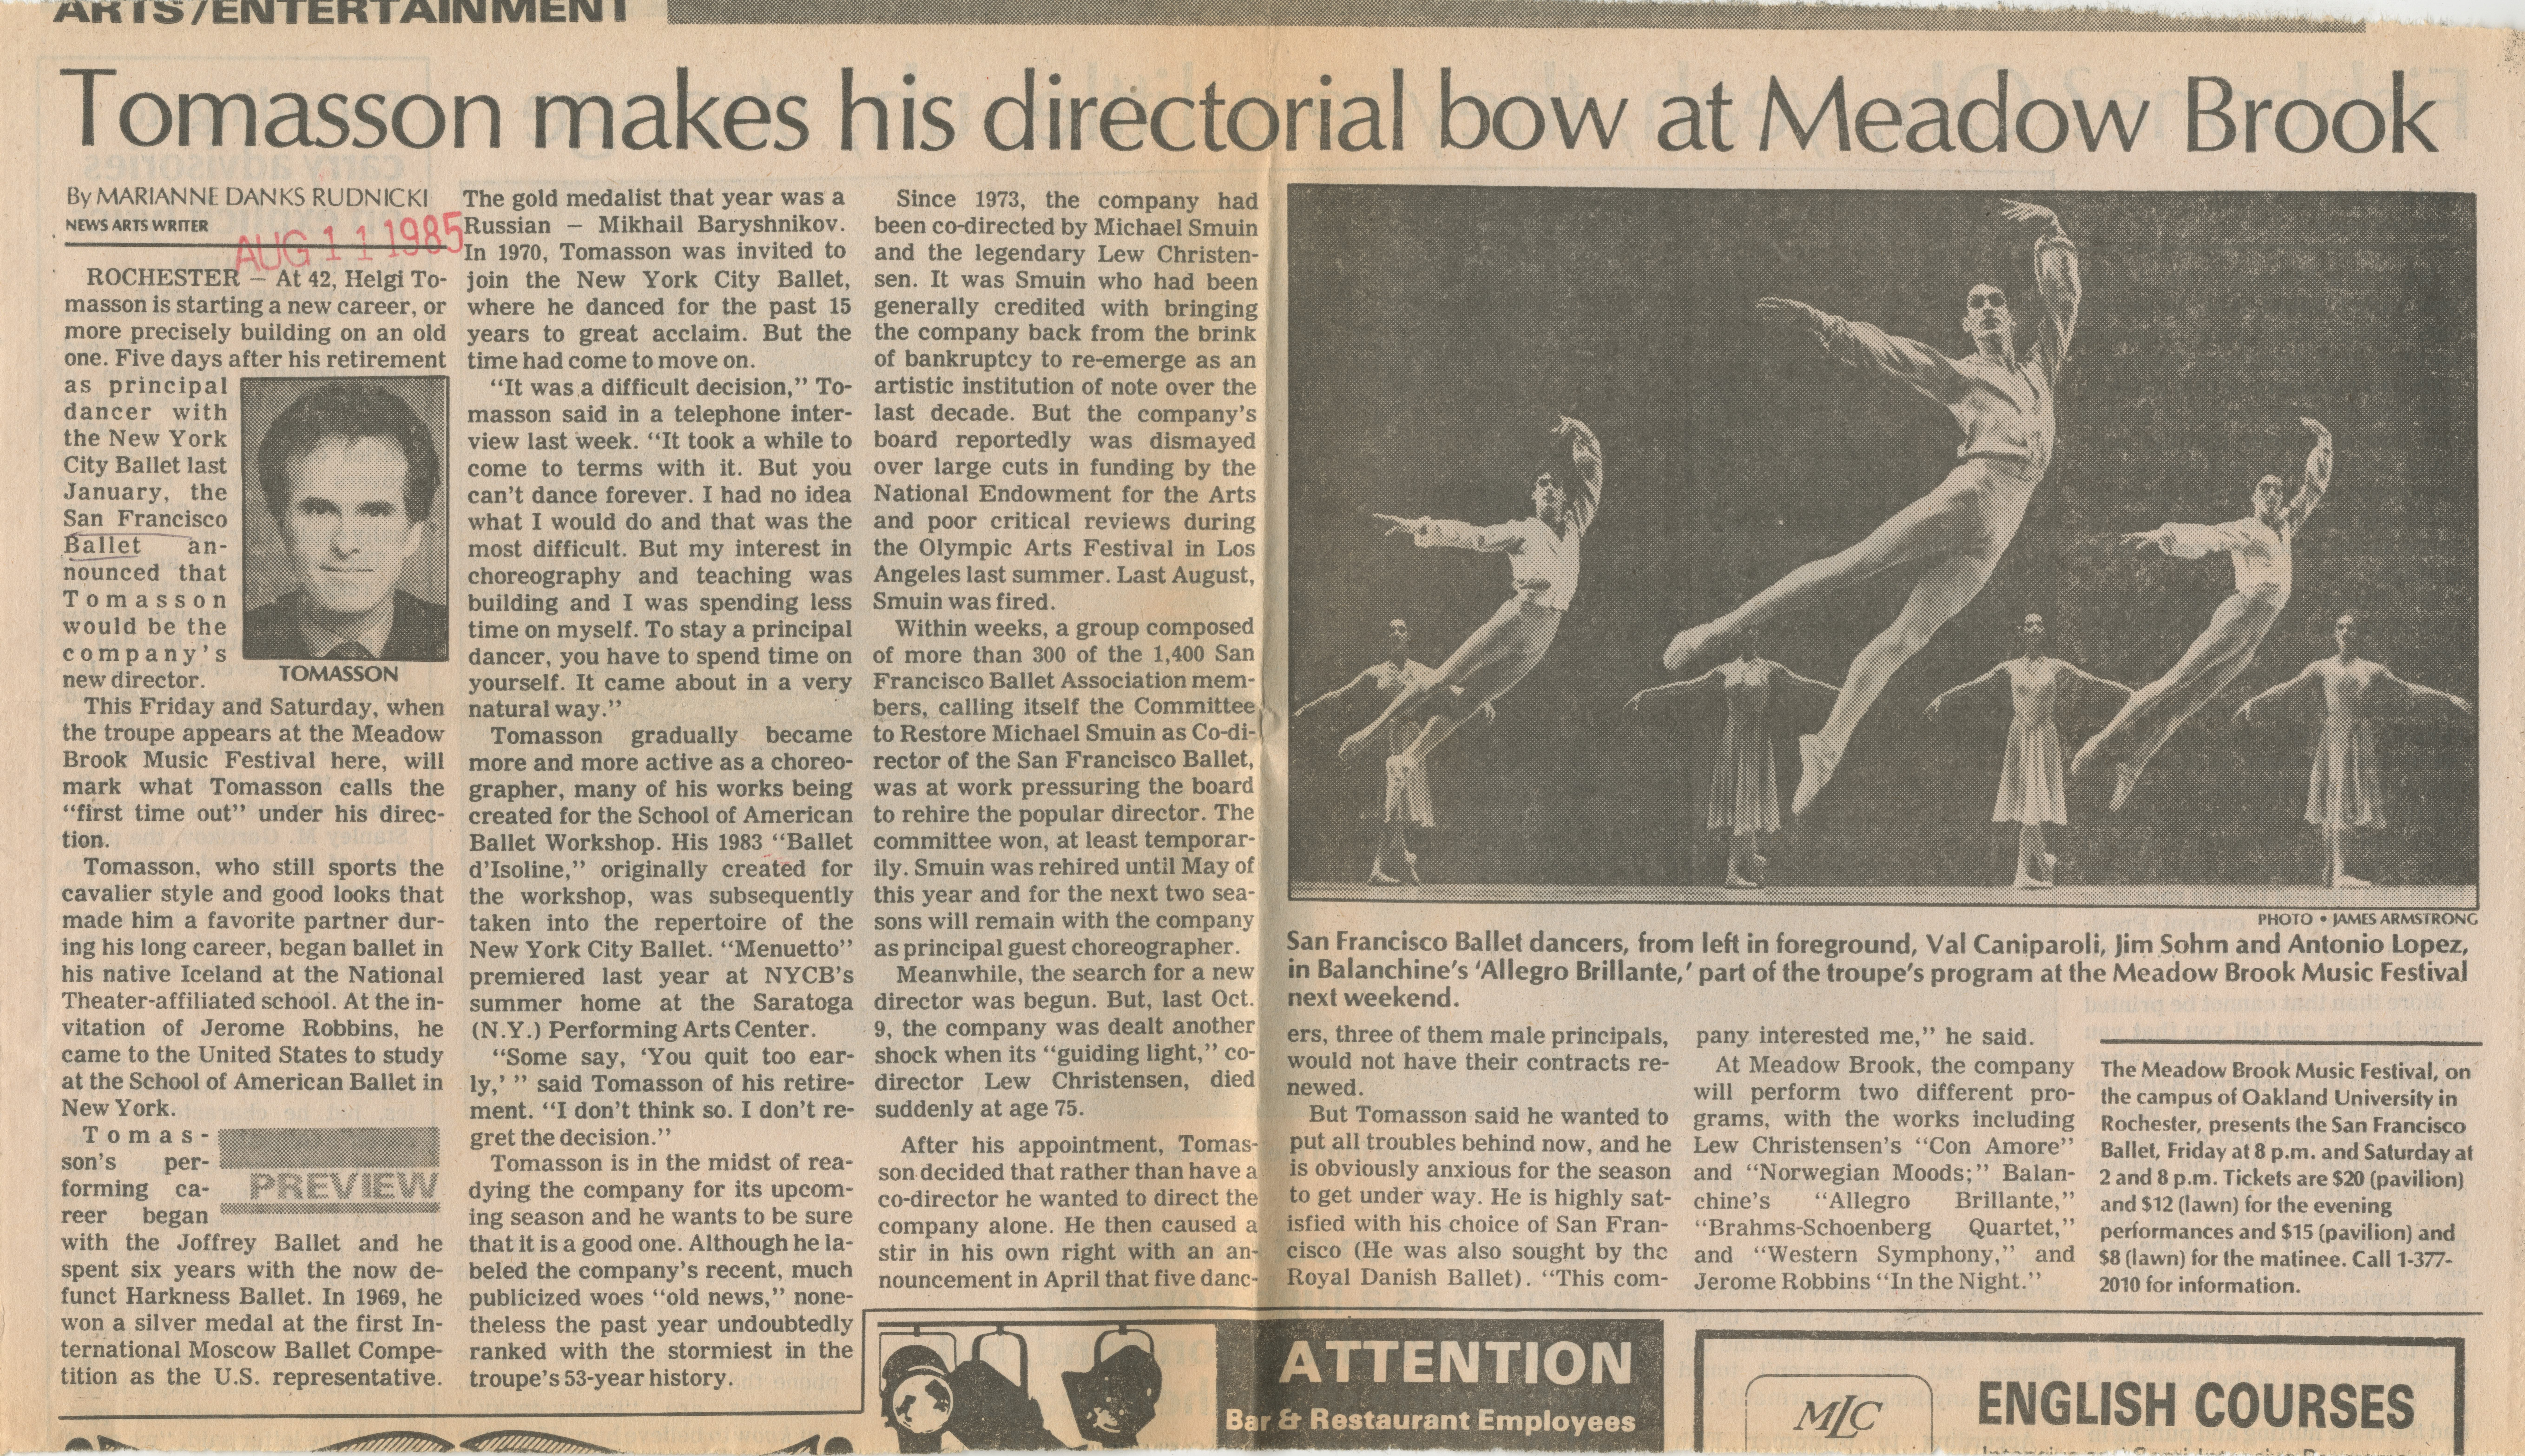 Tomasson Makes His Directorial Bow At Meadow Brook  image